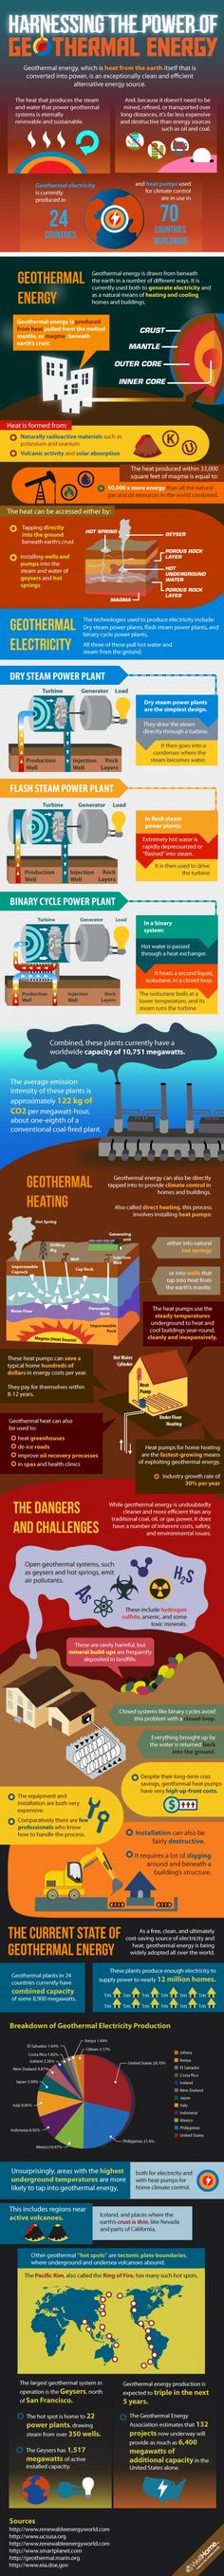 Harnessing the Power of Geothermal Energy  Infographic